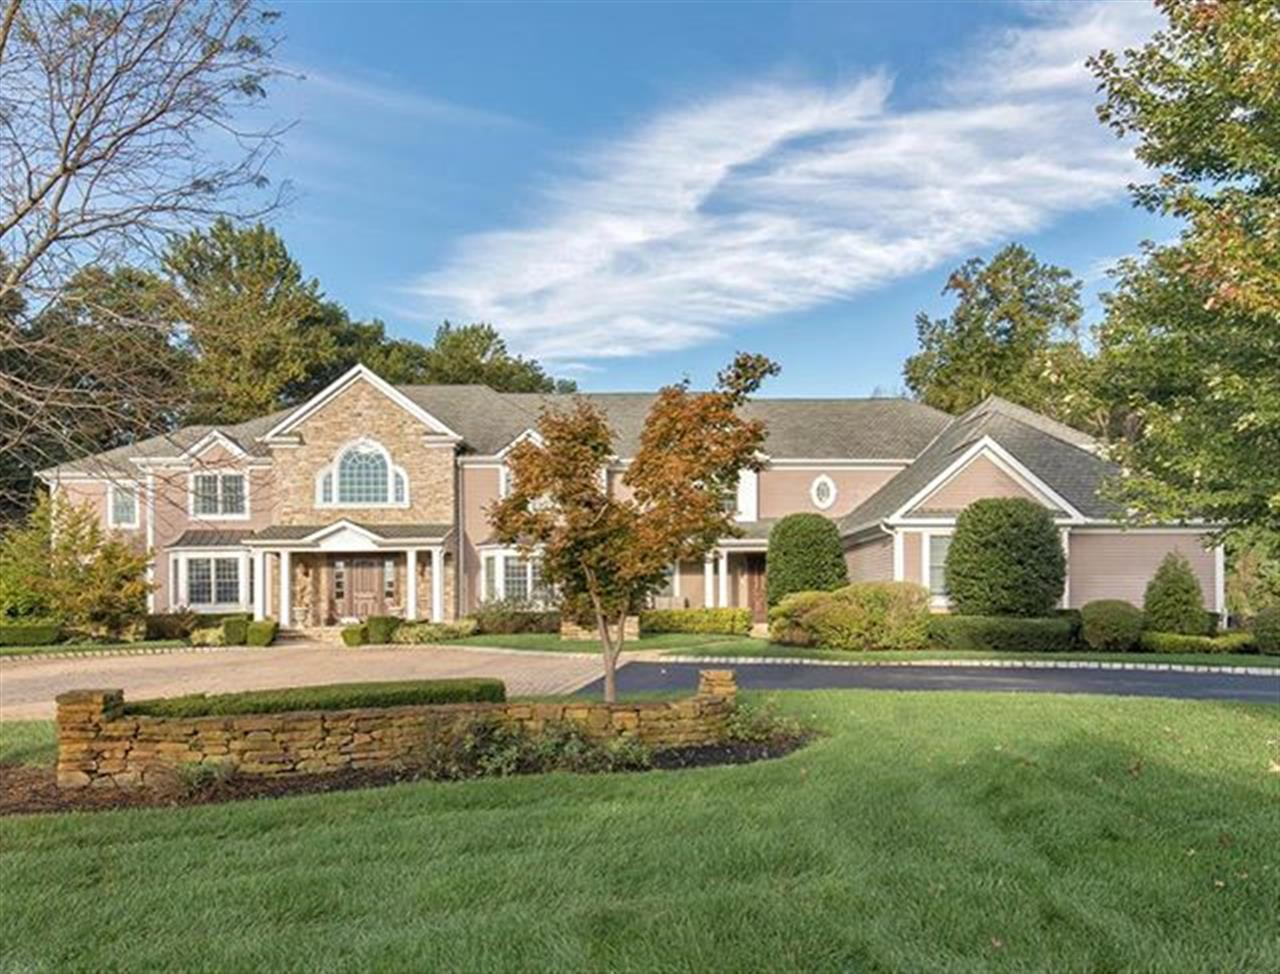 Welcome to 3 Michaels Way ! The featured property of the week! . 3 Michaels Way Colts Neck, NJ http://bit.ly/2zL5yWr